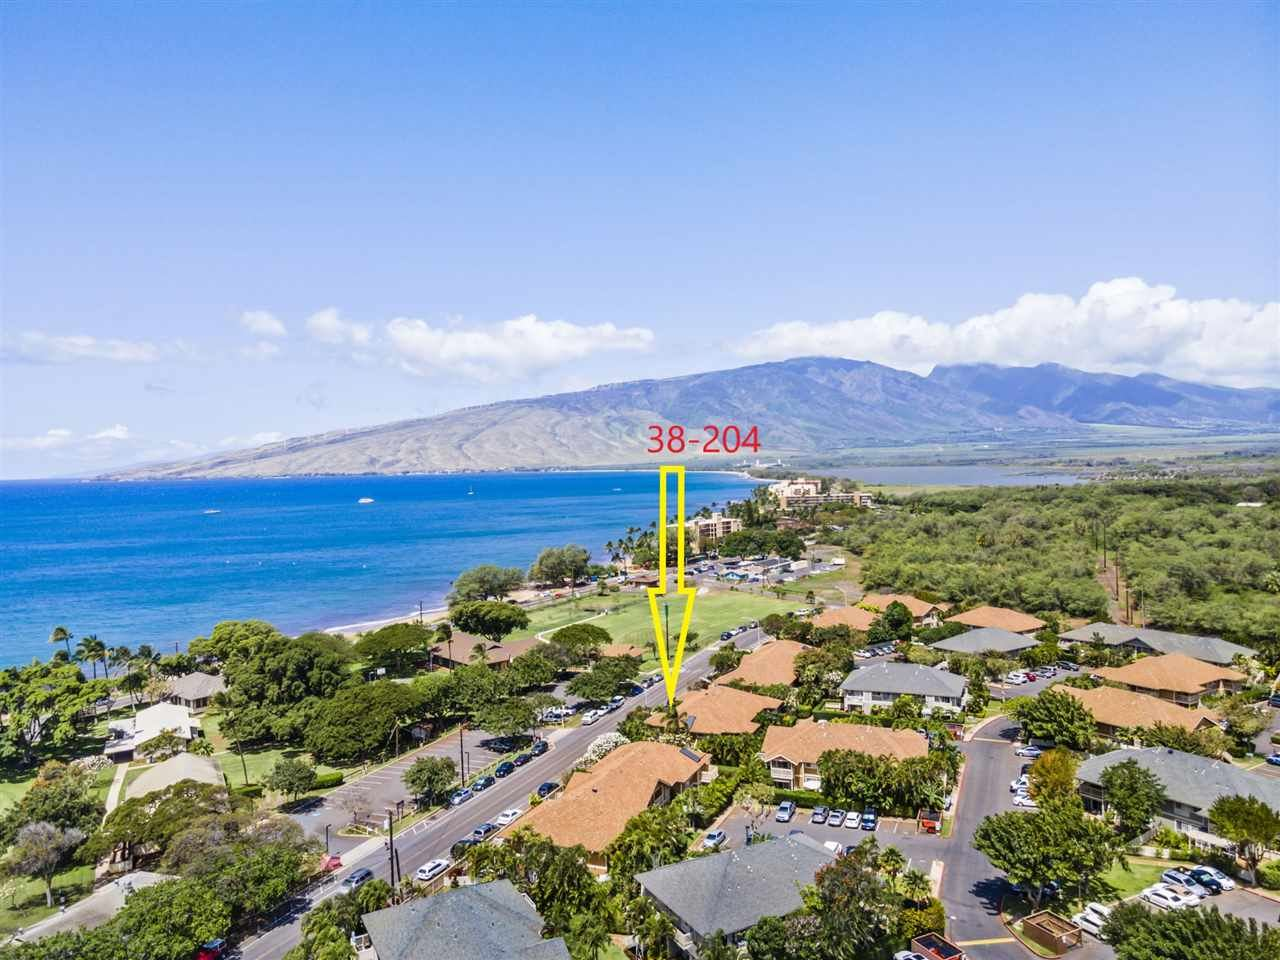 Photo of 140 UWAPO Rd #38-204, Kihei, HI 96753 (MLS # 390994)